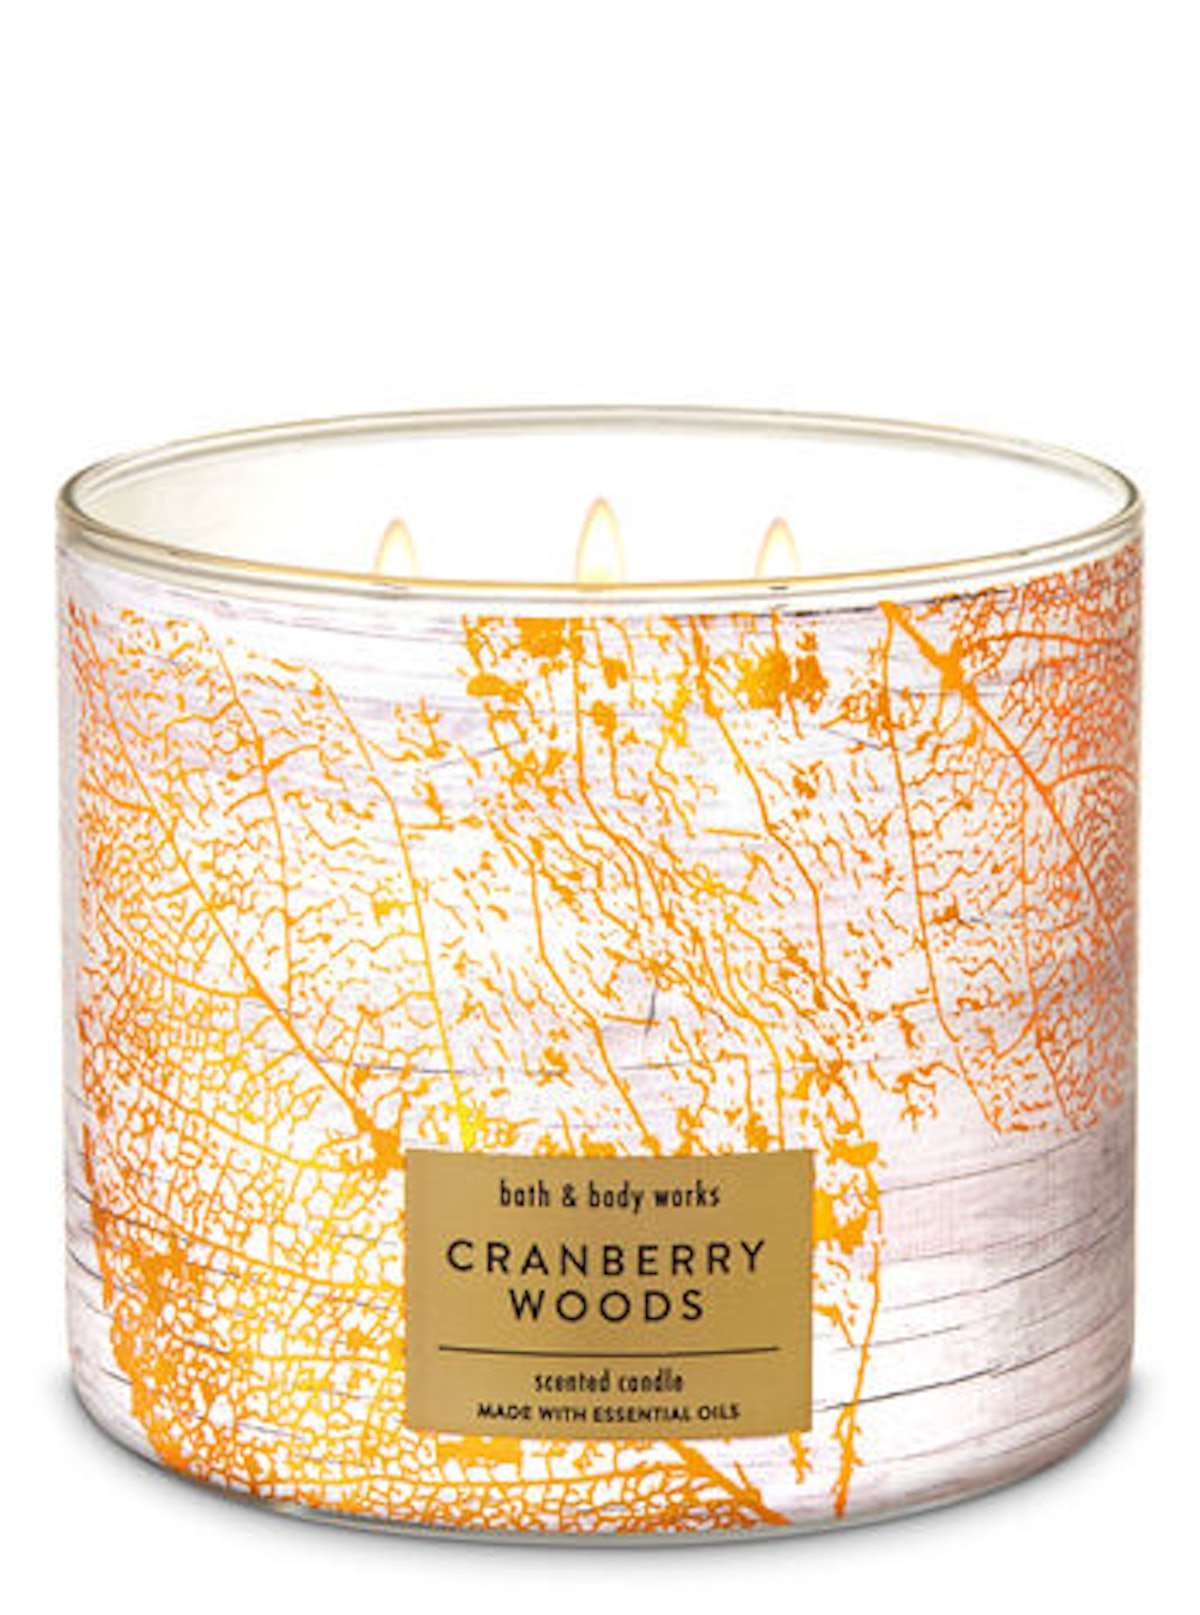 Cranberry Woods 3-Wick Candle